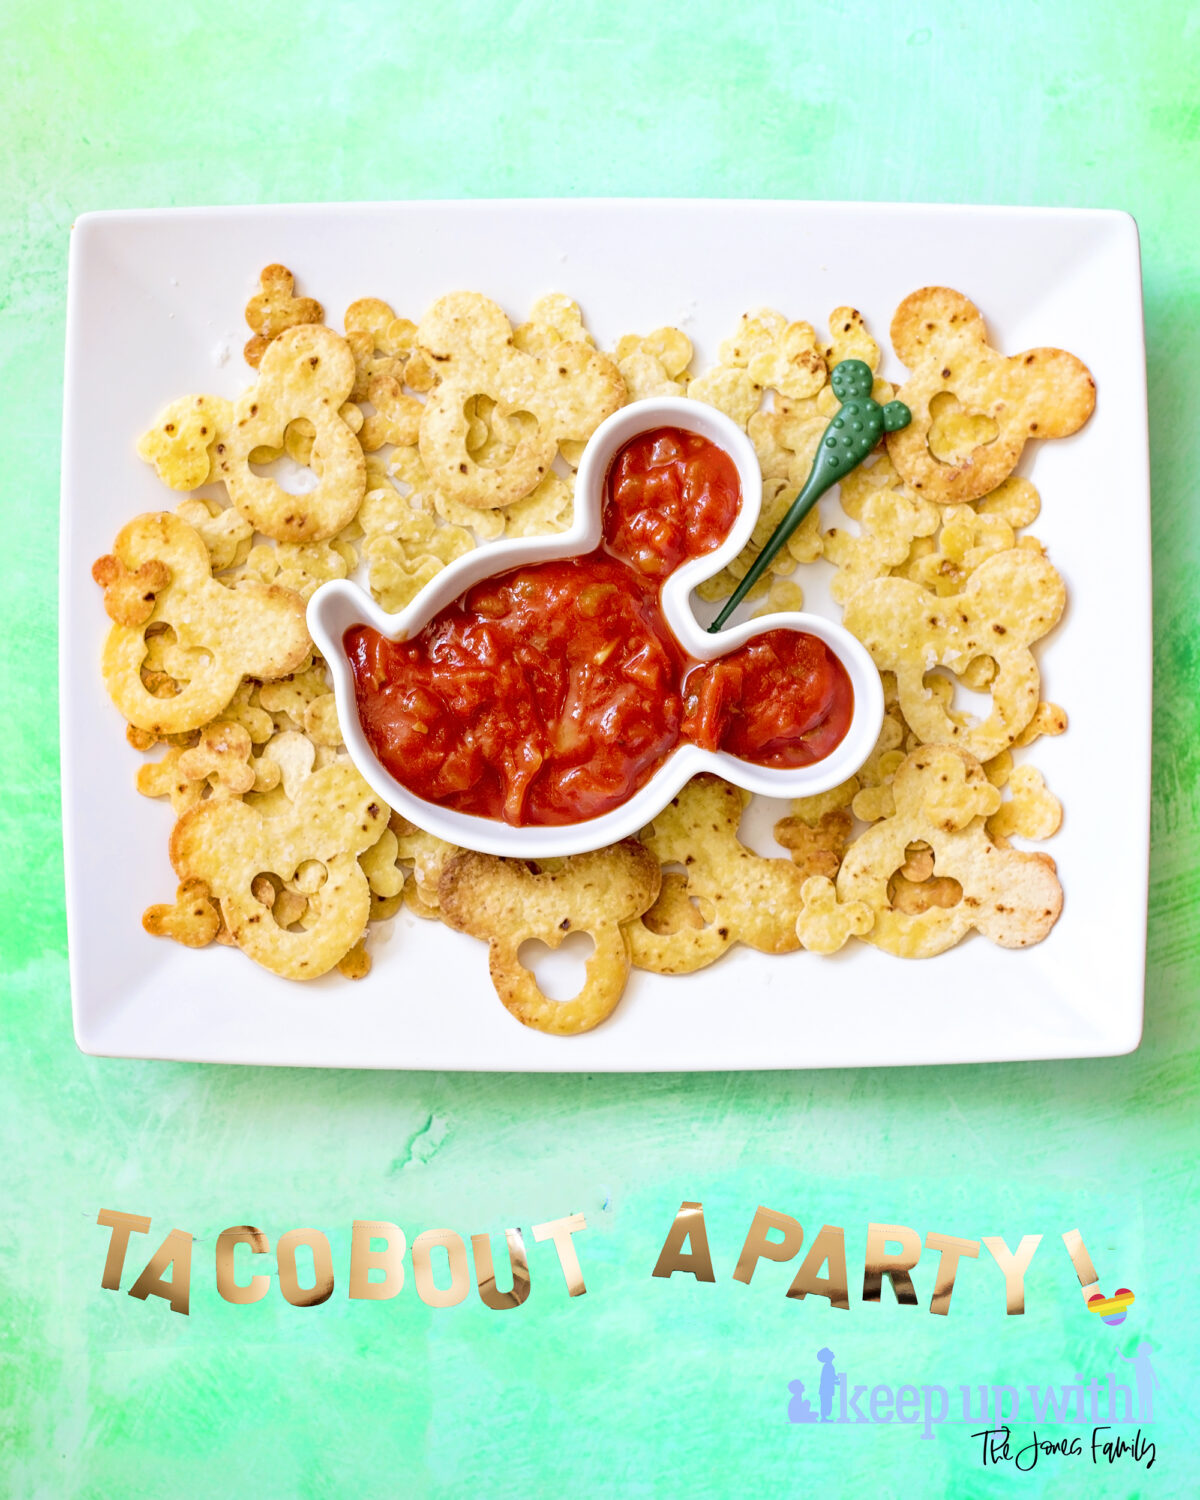 "Image shows large rectangular white plate filled with Disney's Mickey Mouse nacho chips and a Mickey Mouse shaped bowl of salsa.  The background is sea green and there is a golden banner across the bottom saying ""taco bout a party"" for cinco de mayo. Keep up with the jones family."